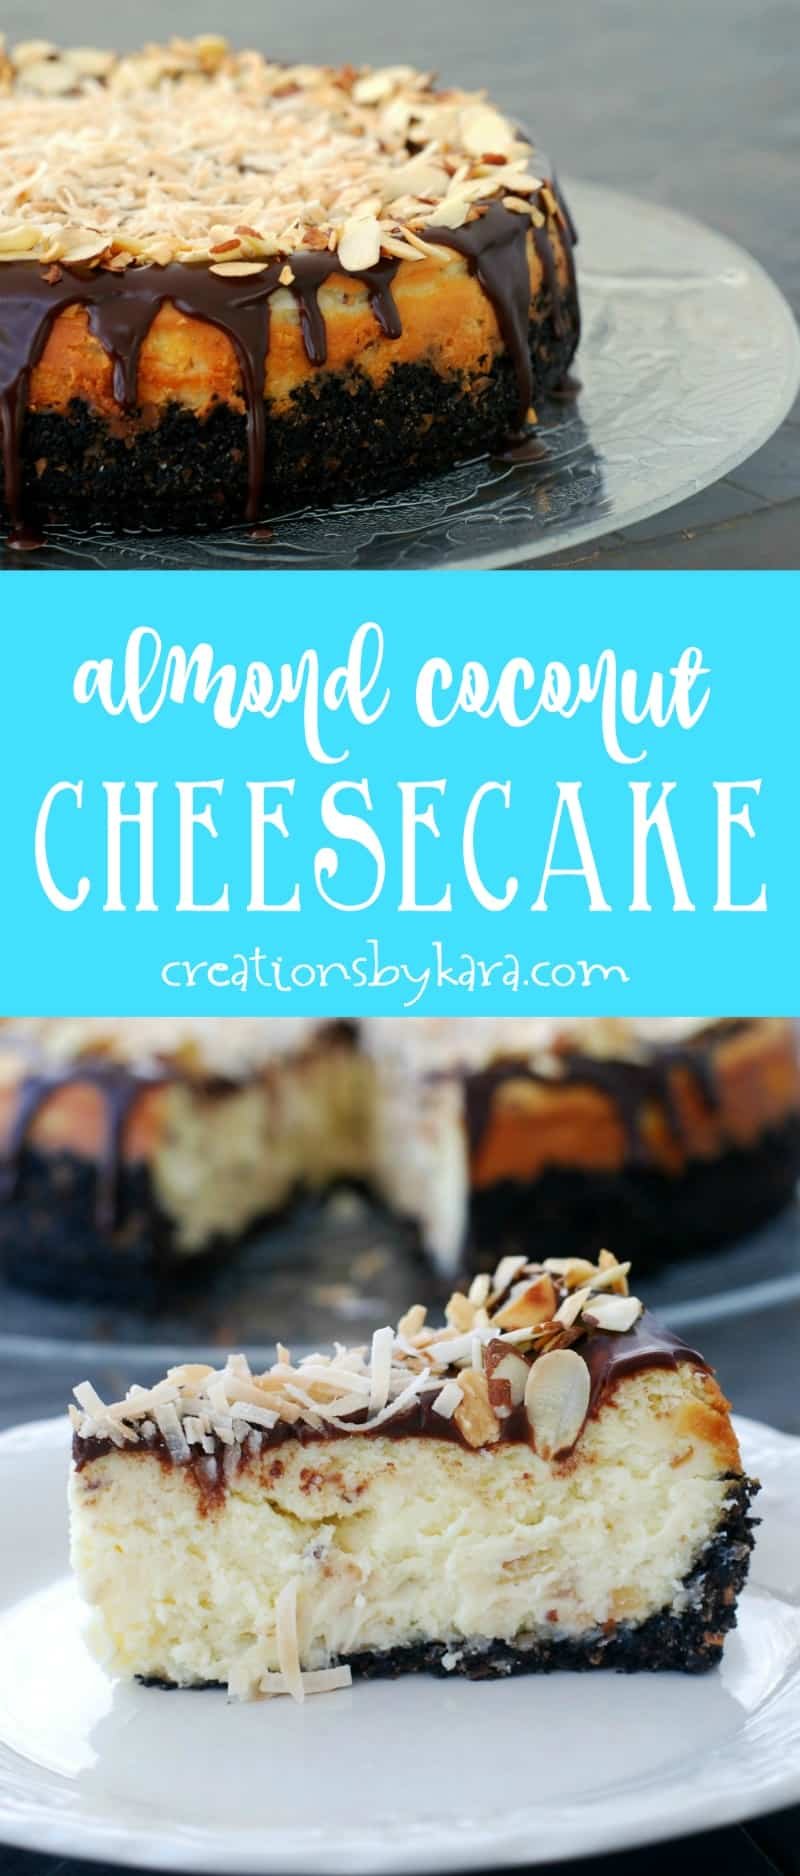 This Almond Coconut Cheesecake is a piece of heaven in every bite! If you love Almond Joy candy bars, you need to try this cheesecake recipe.